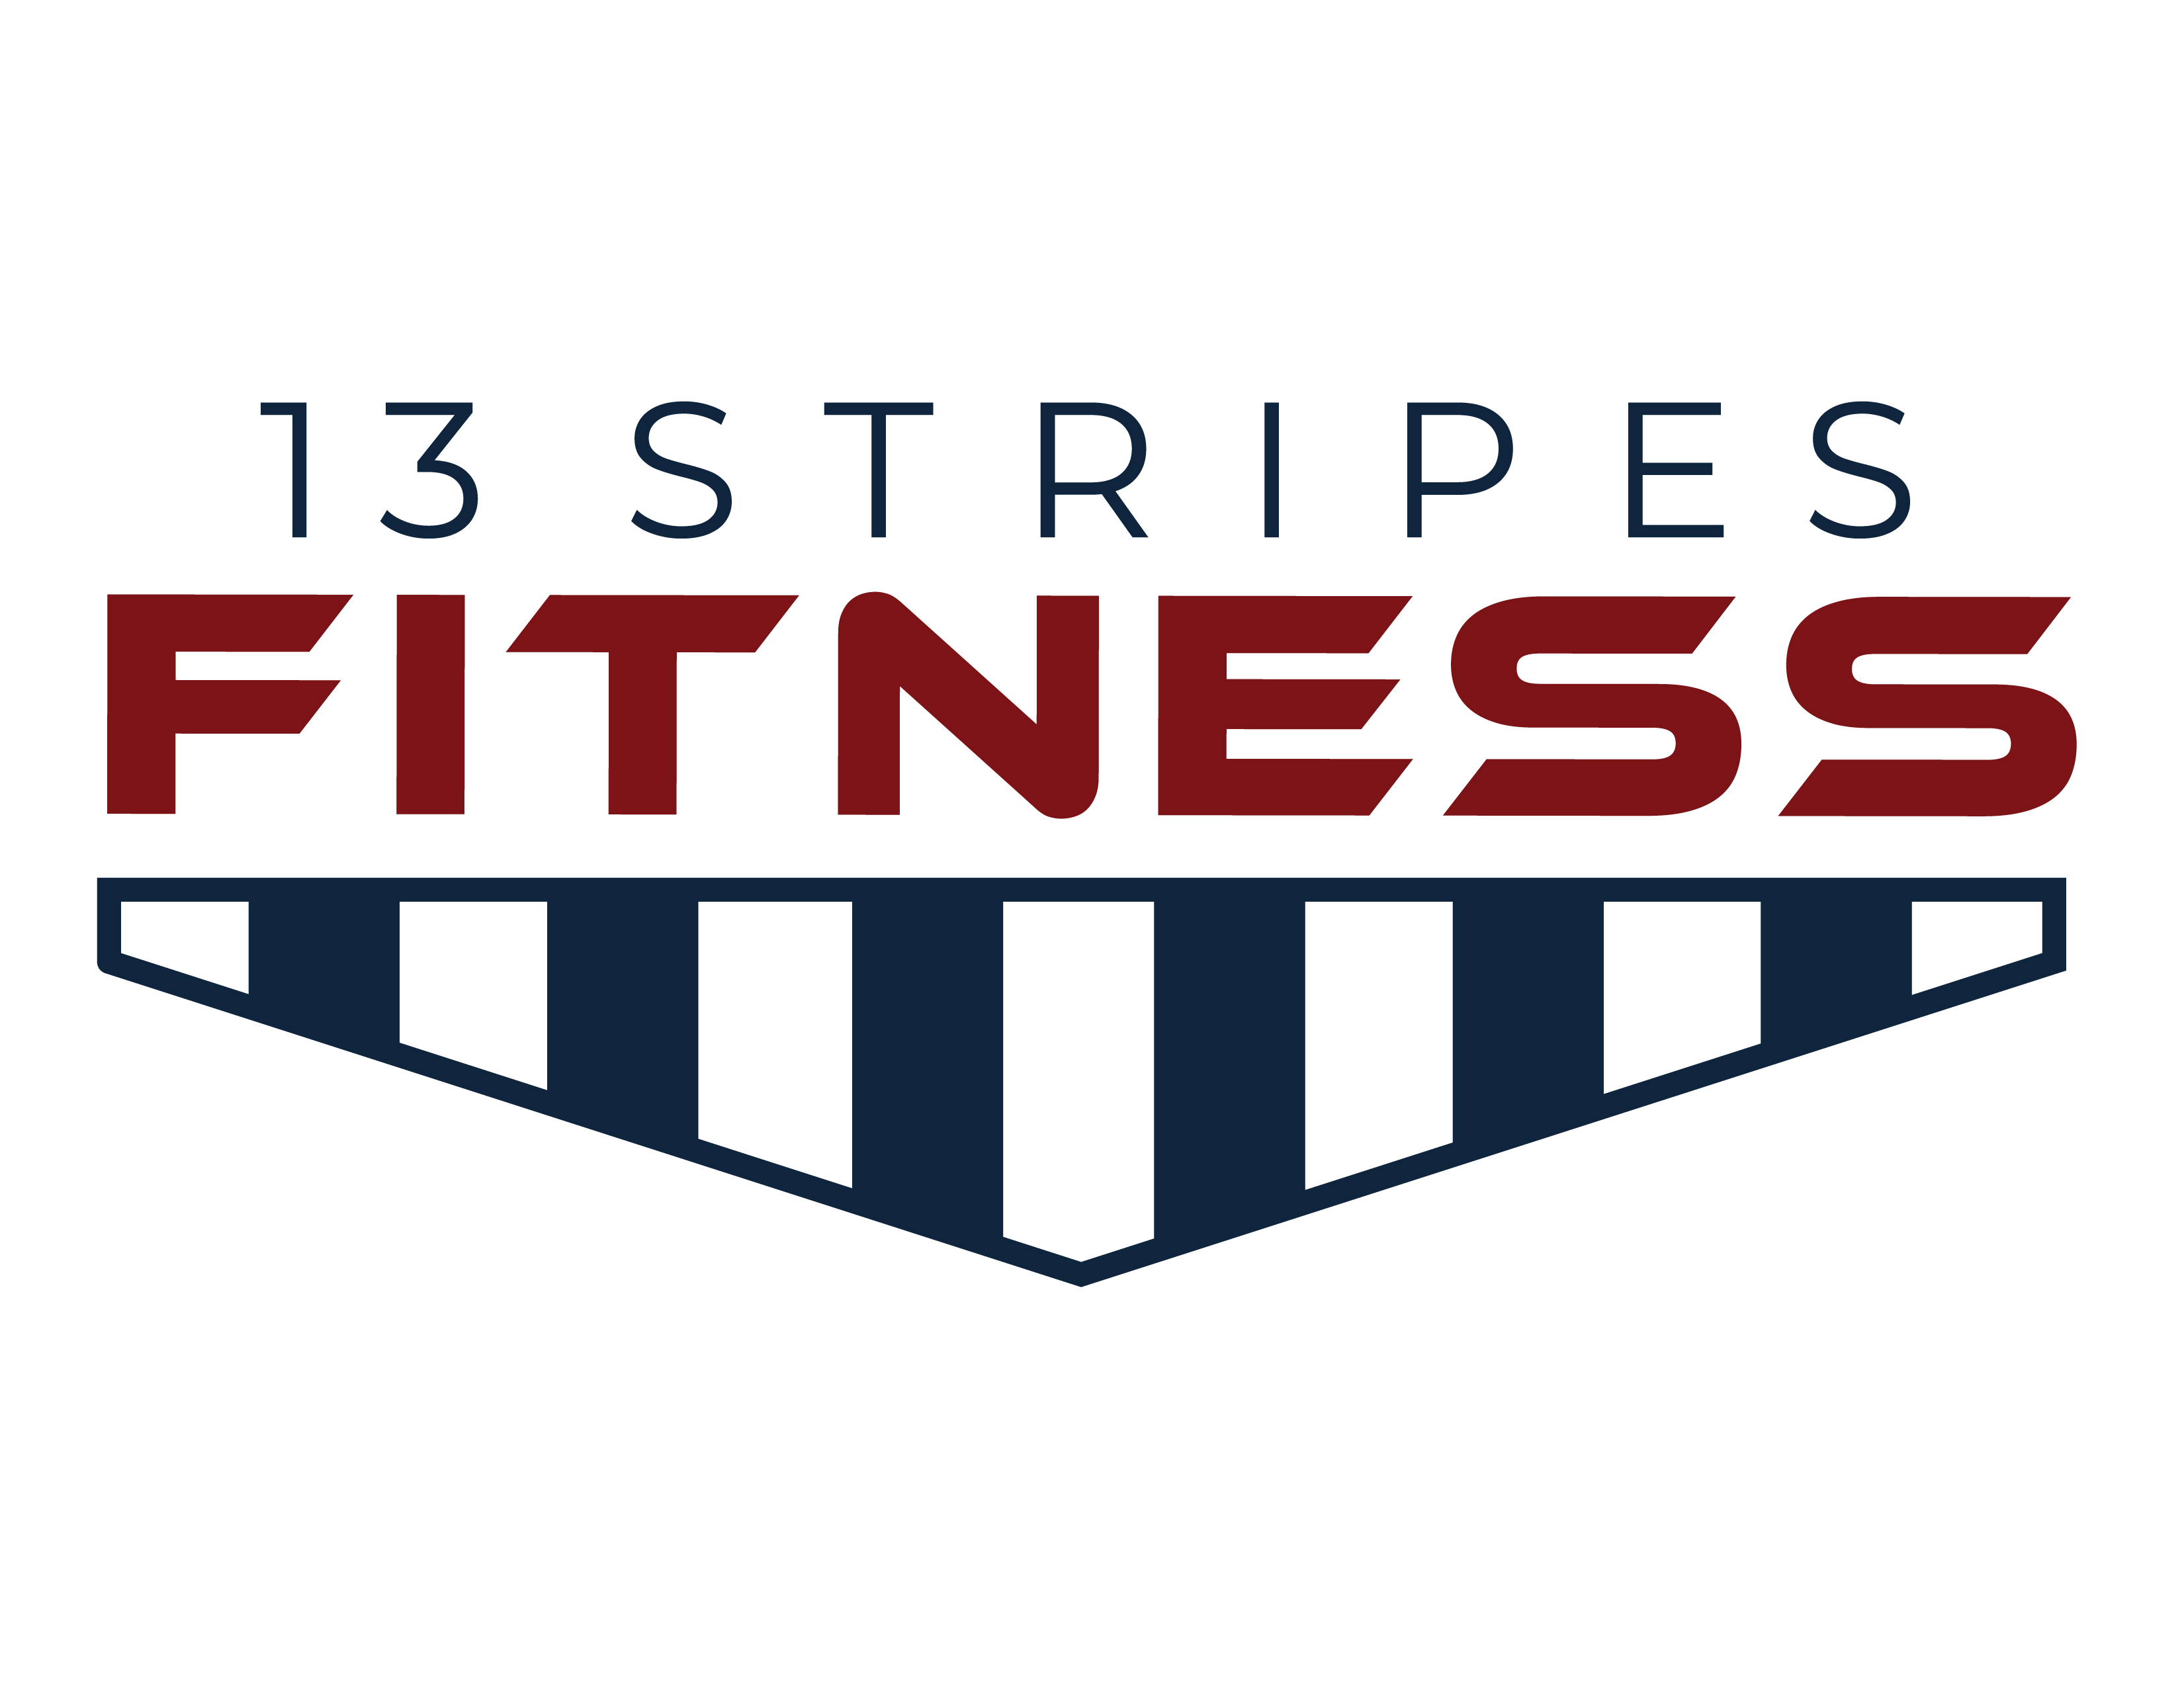 13 Stripes logo